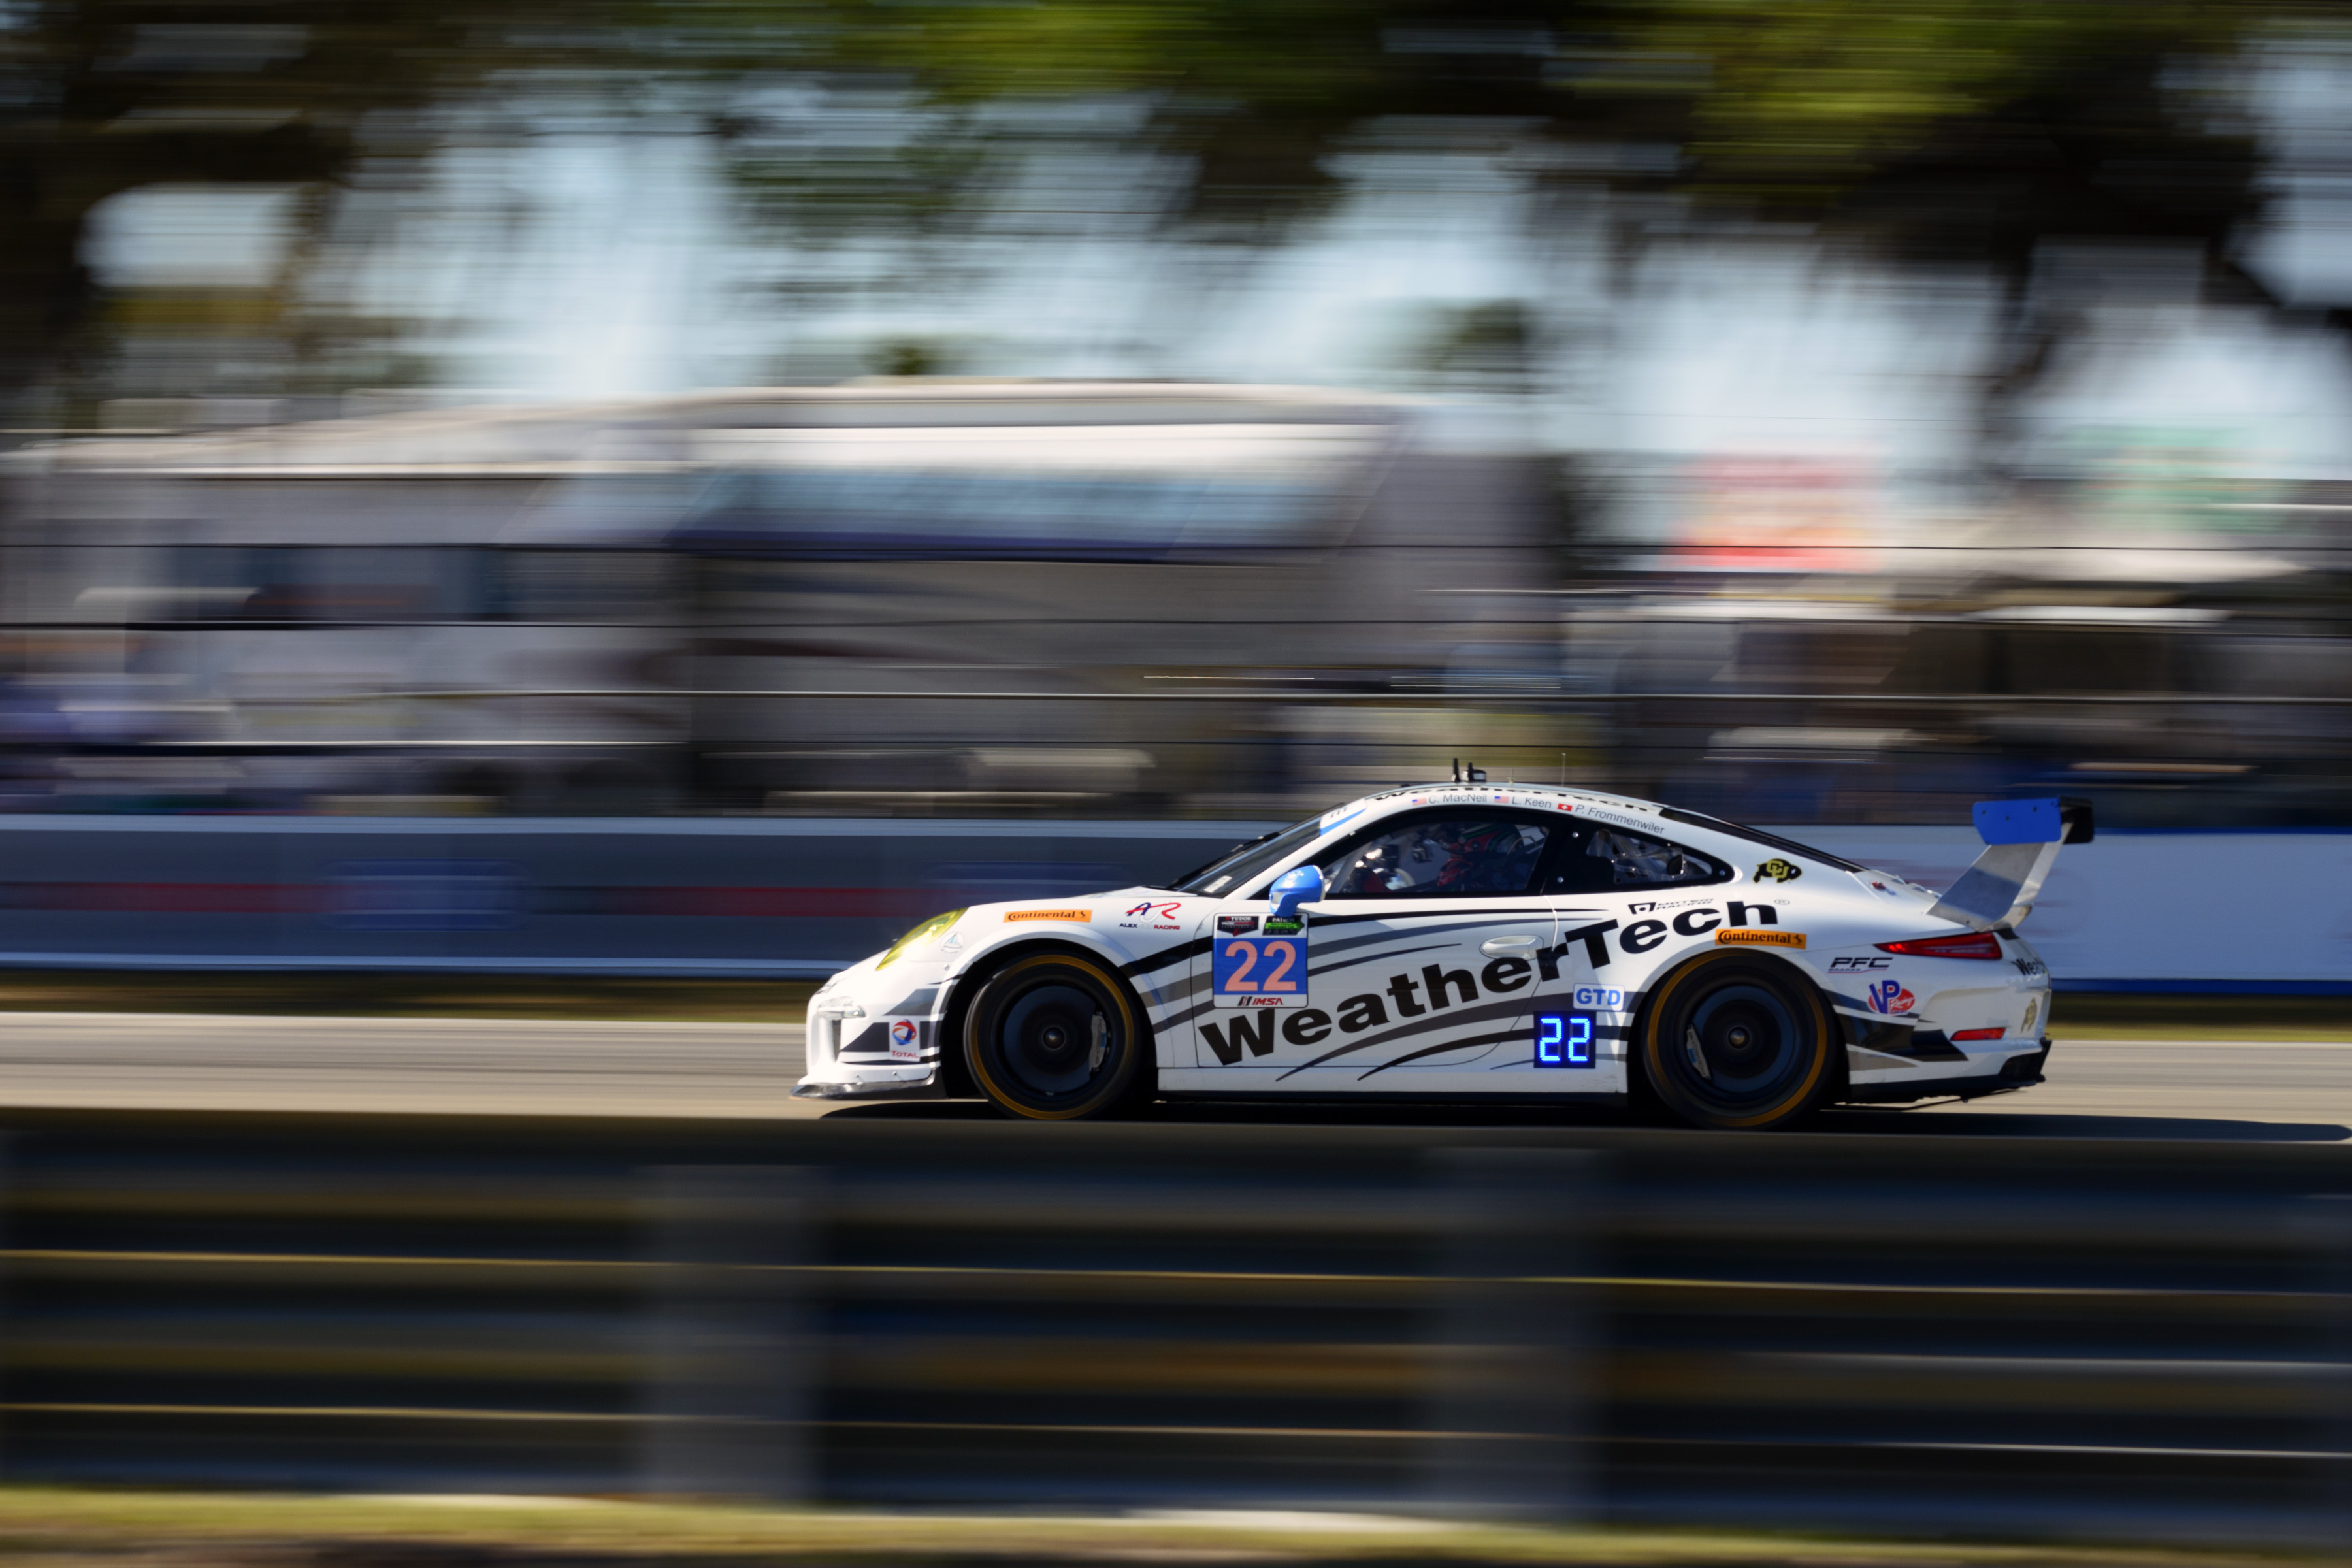 Porsche S Pictures And Results From The Mobil 1 12 Hours